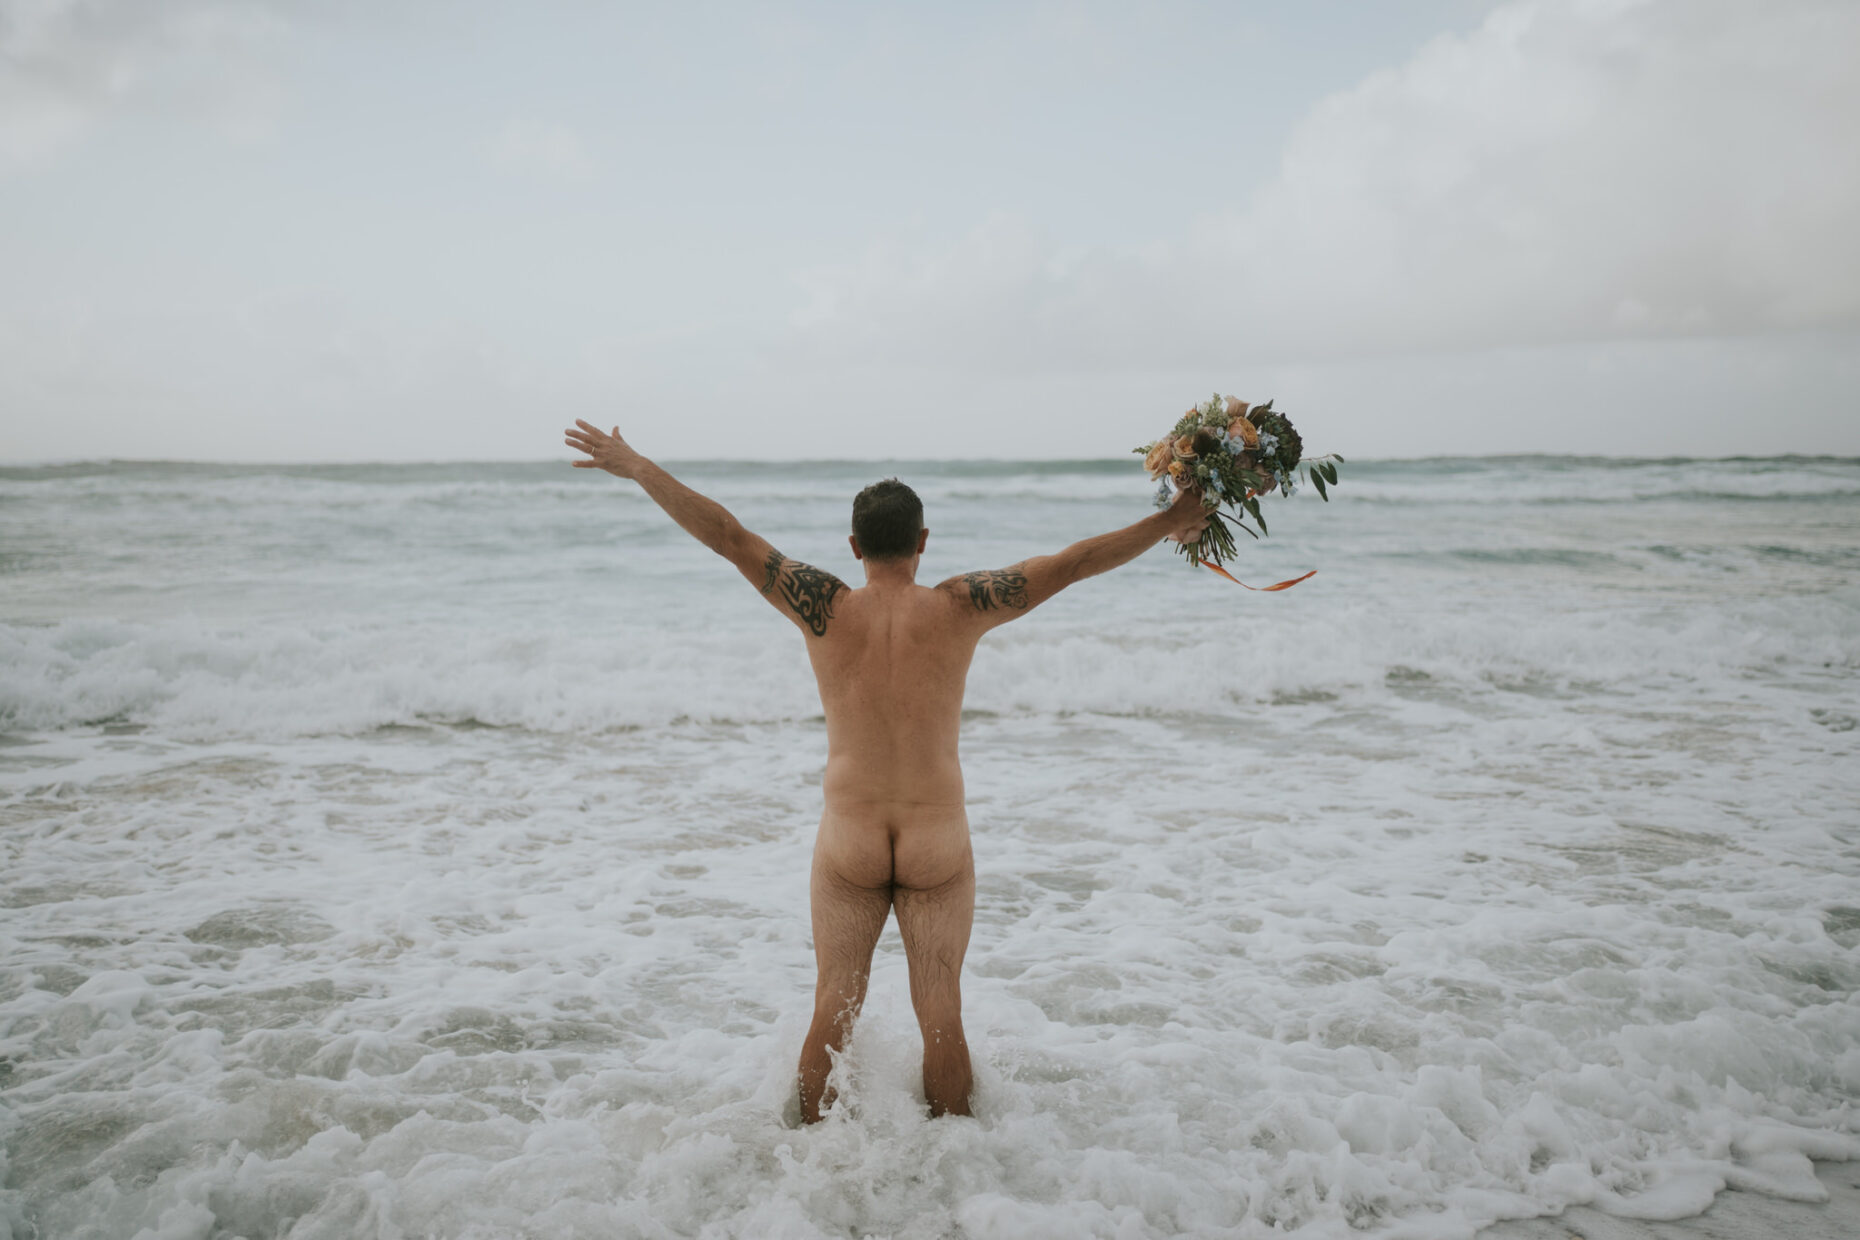 groom runs naked into the sea on his wedding holding his wife's bouquet as the waves crash around him